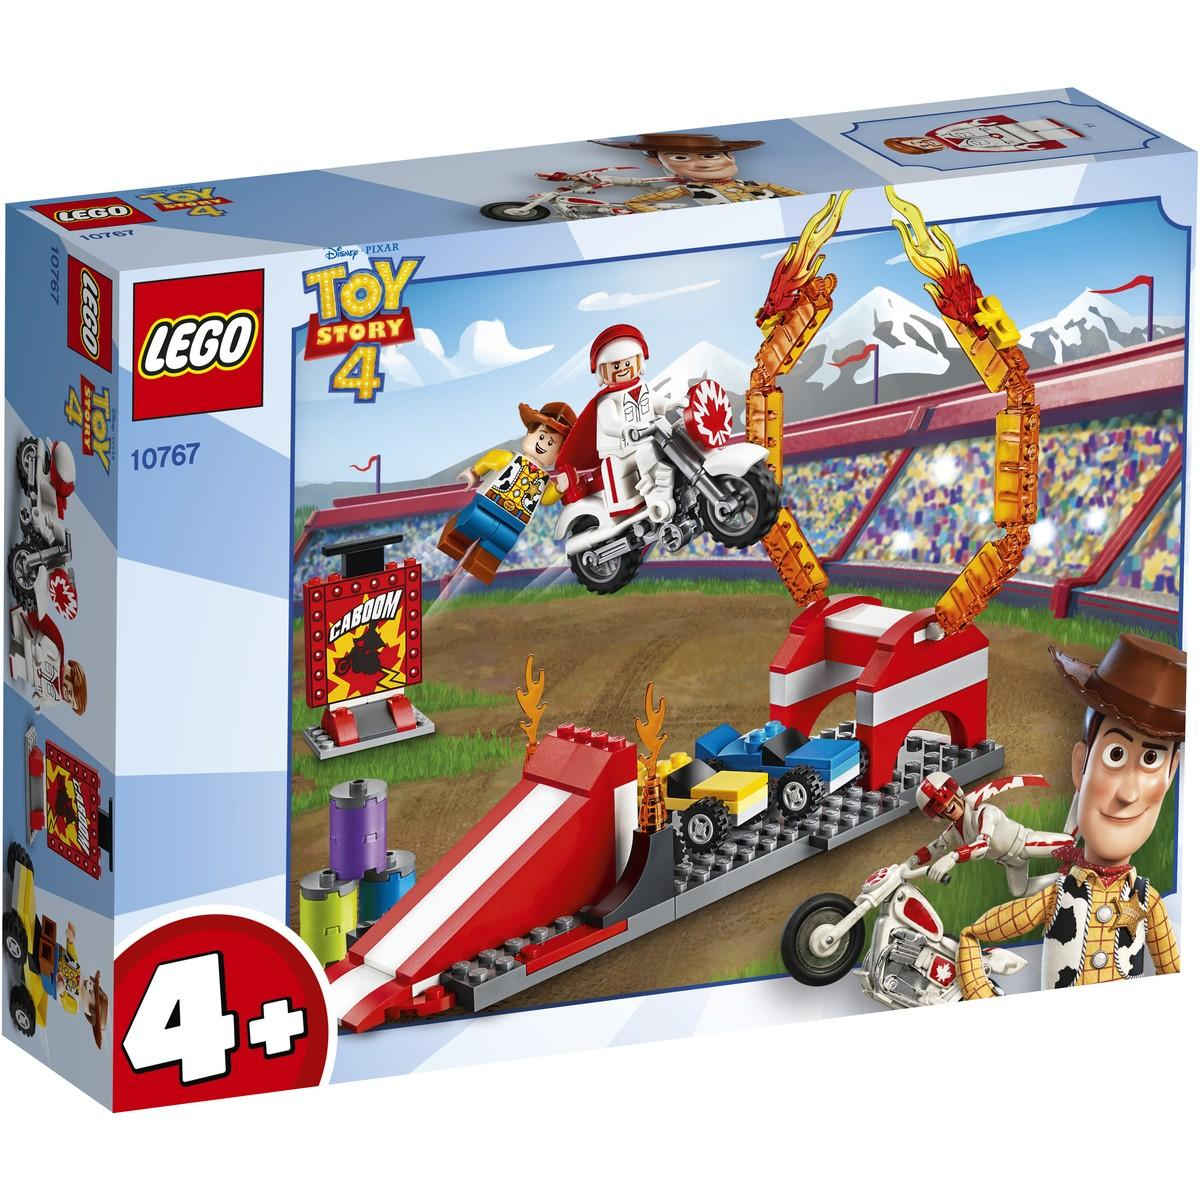 Lego Toy Story Duke Caboom's Stunt show (10767)